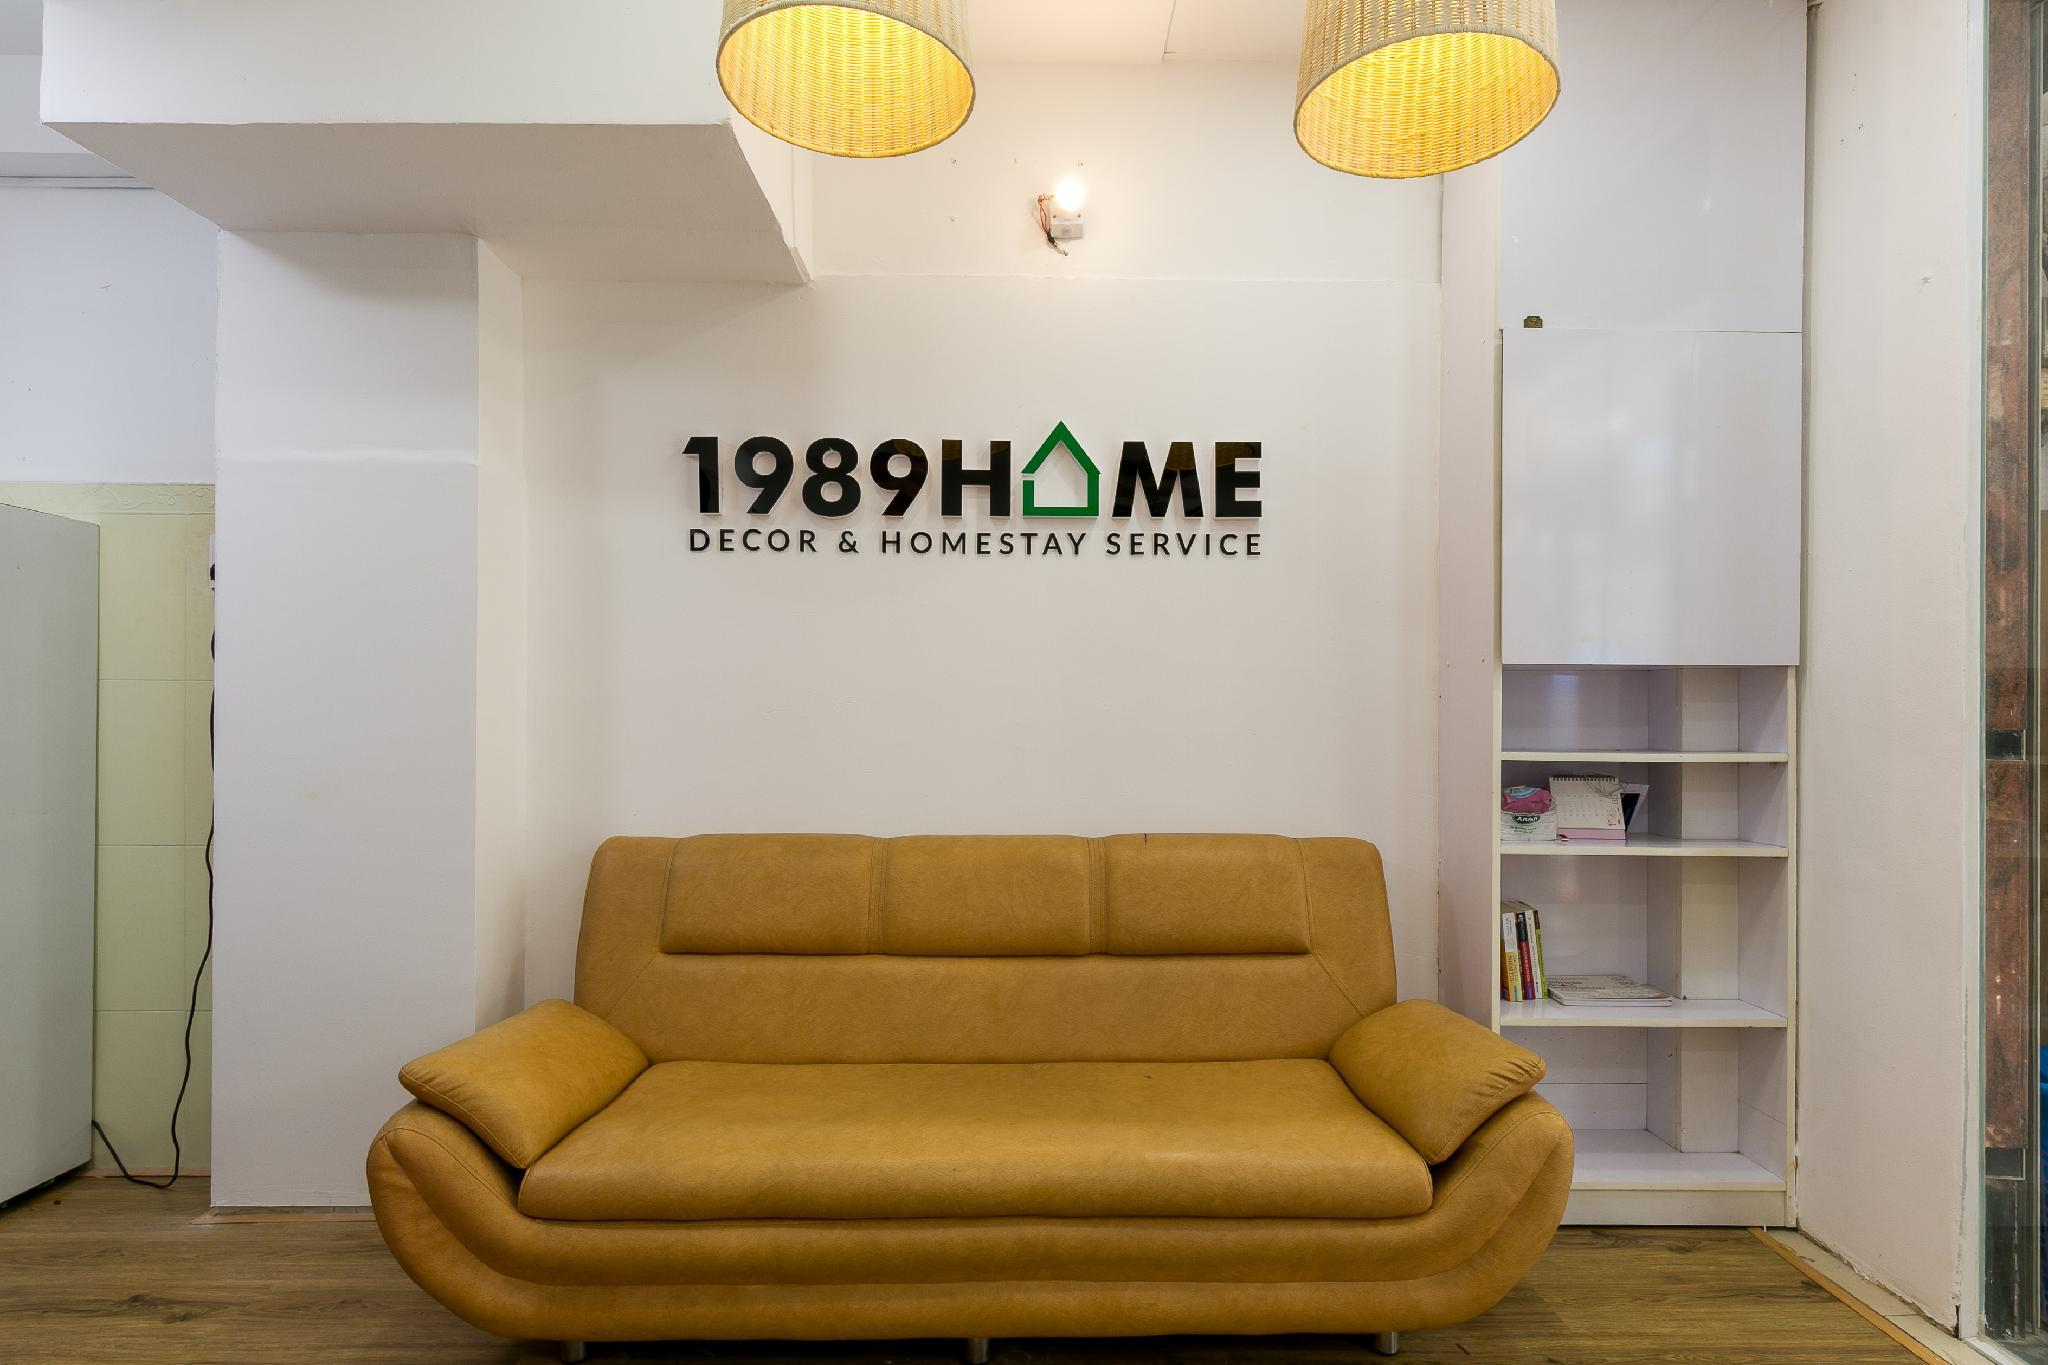 LUXURY APARTMENT CENTRAL 1989 HOME